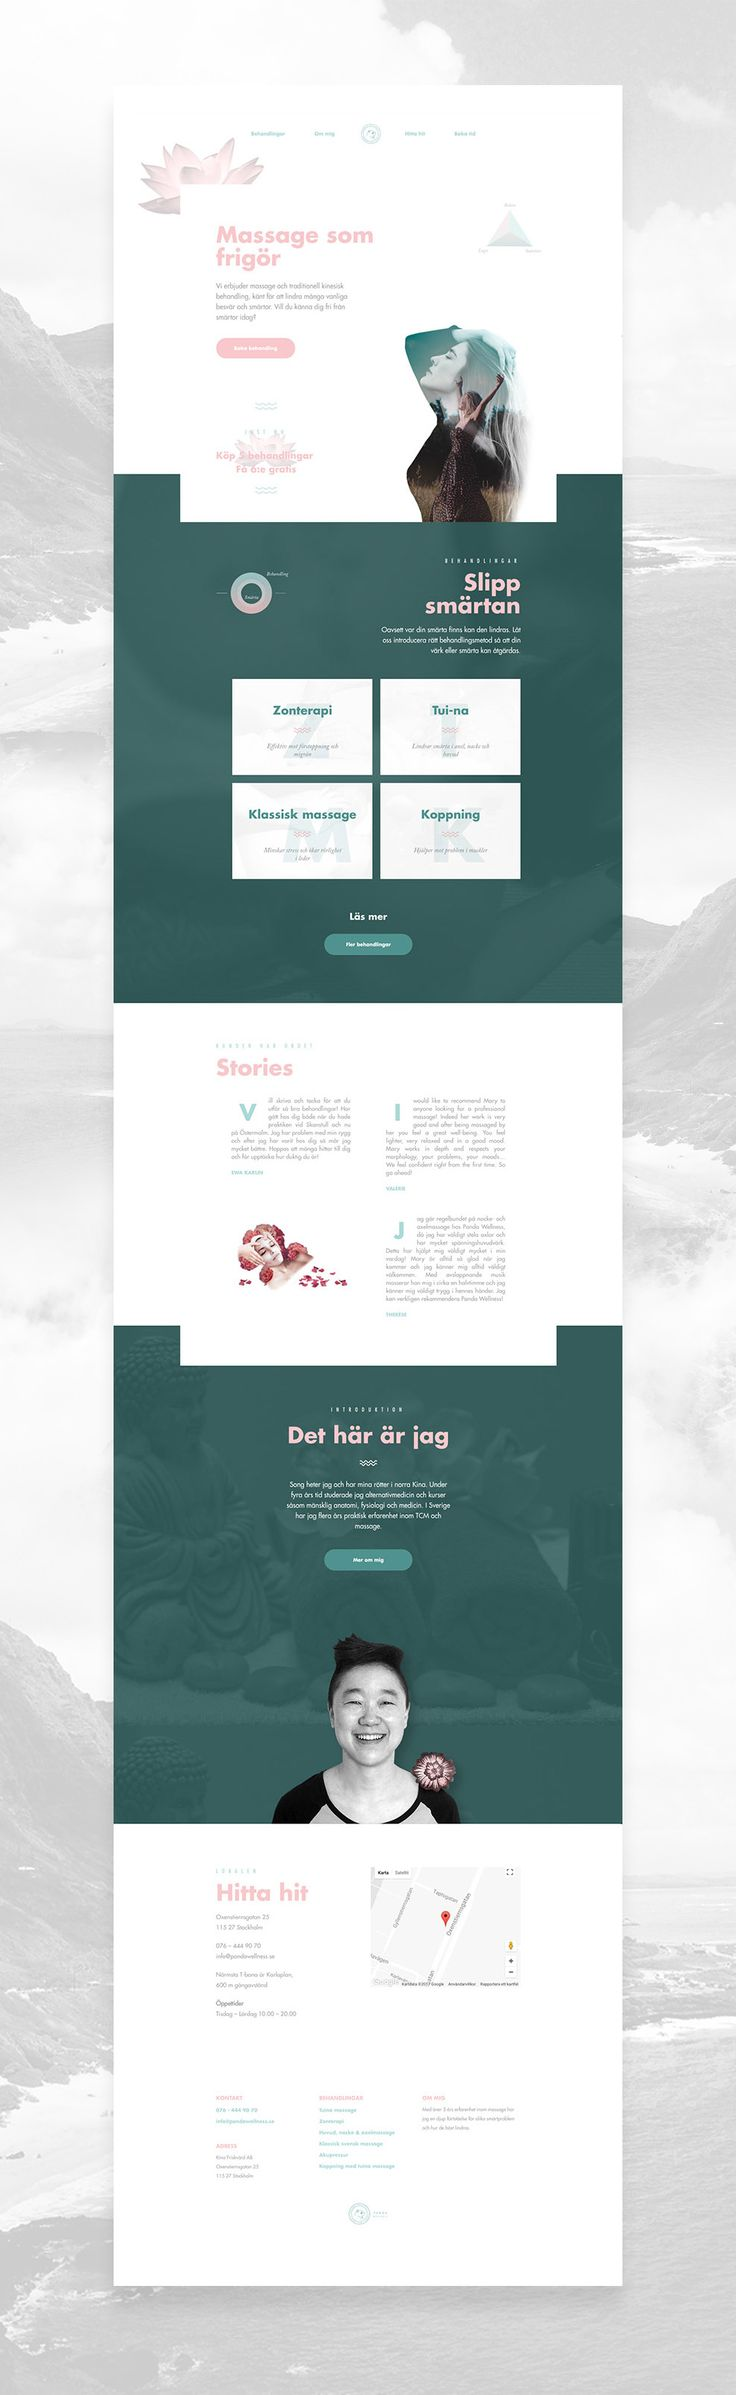 Professional massage salon website design. Focusing on wellness and a relaxing experience.